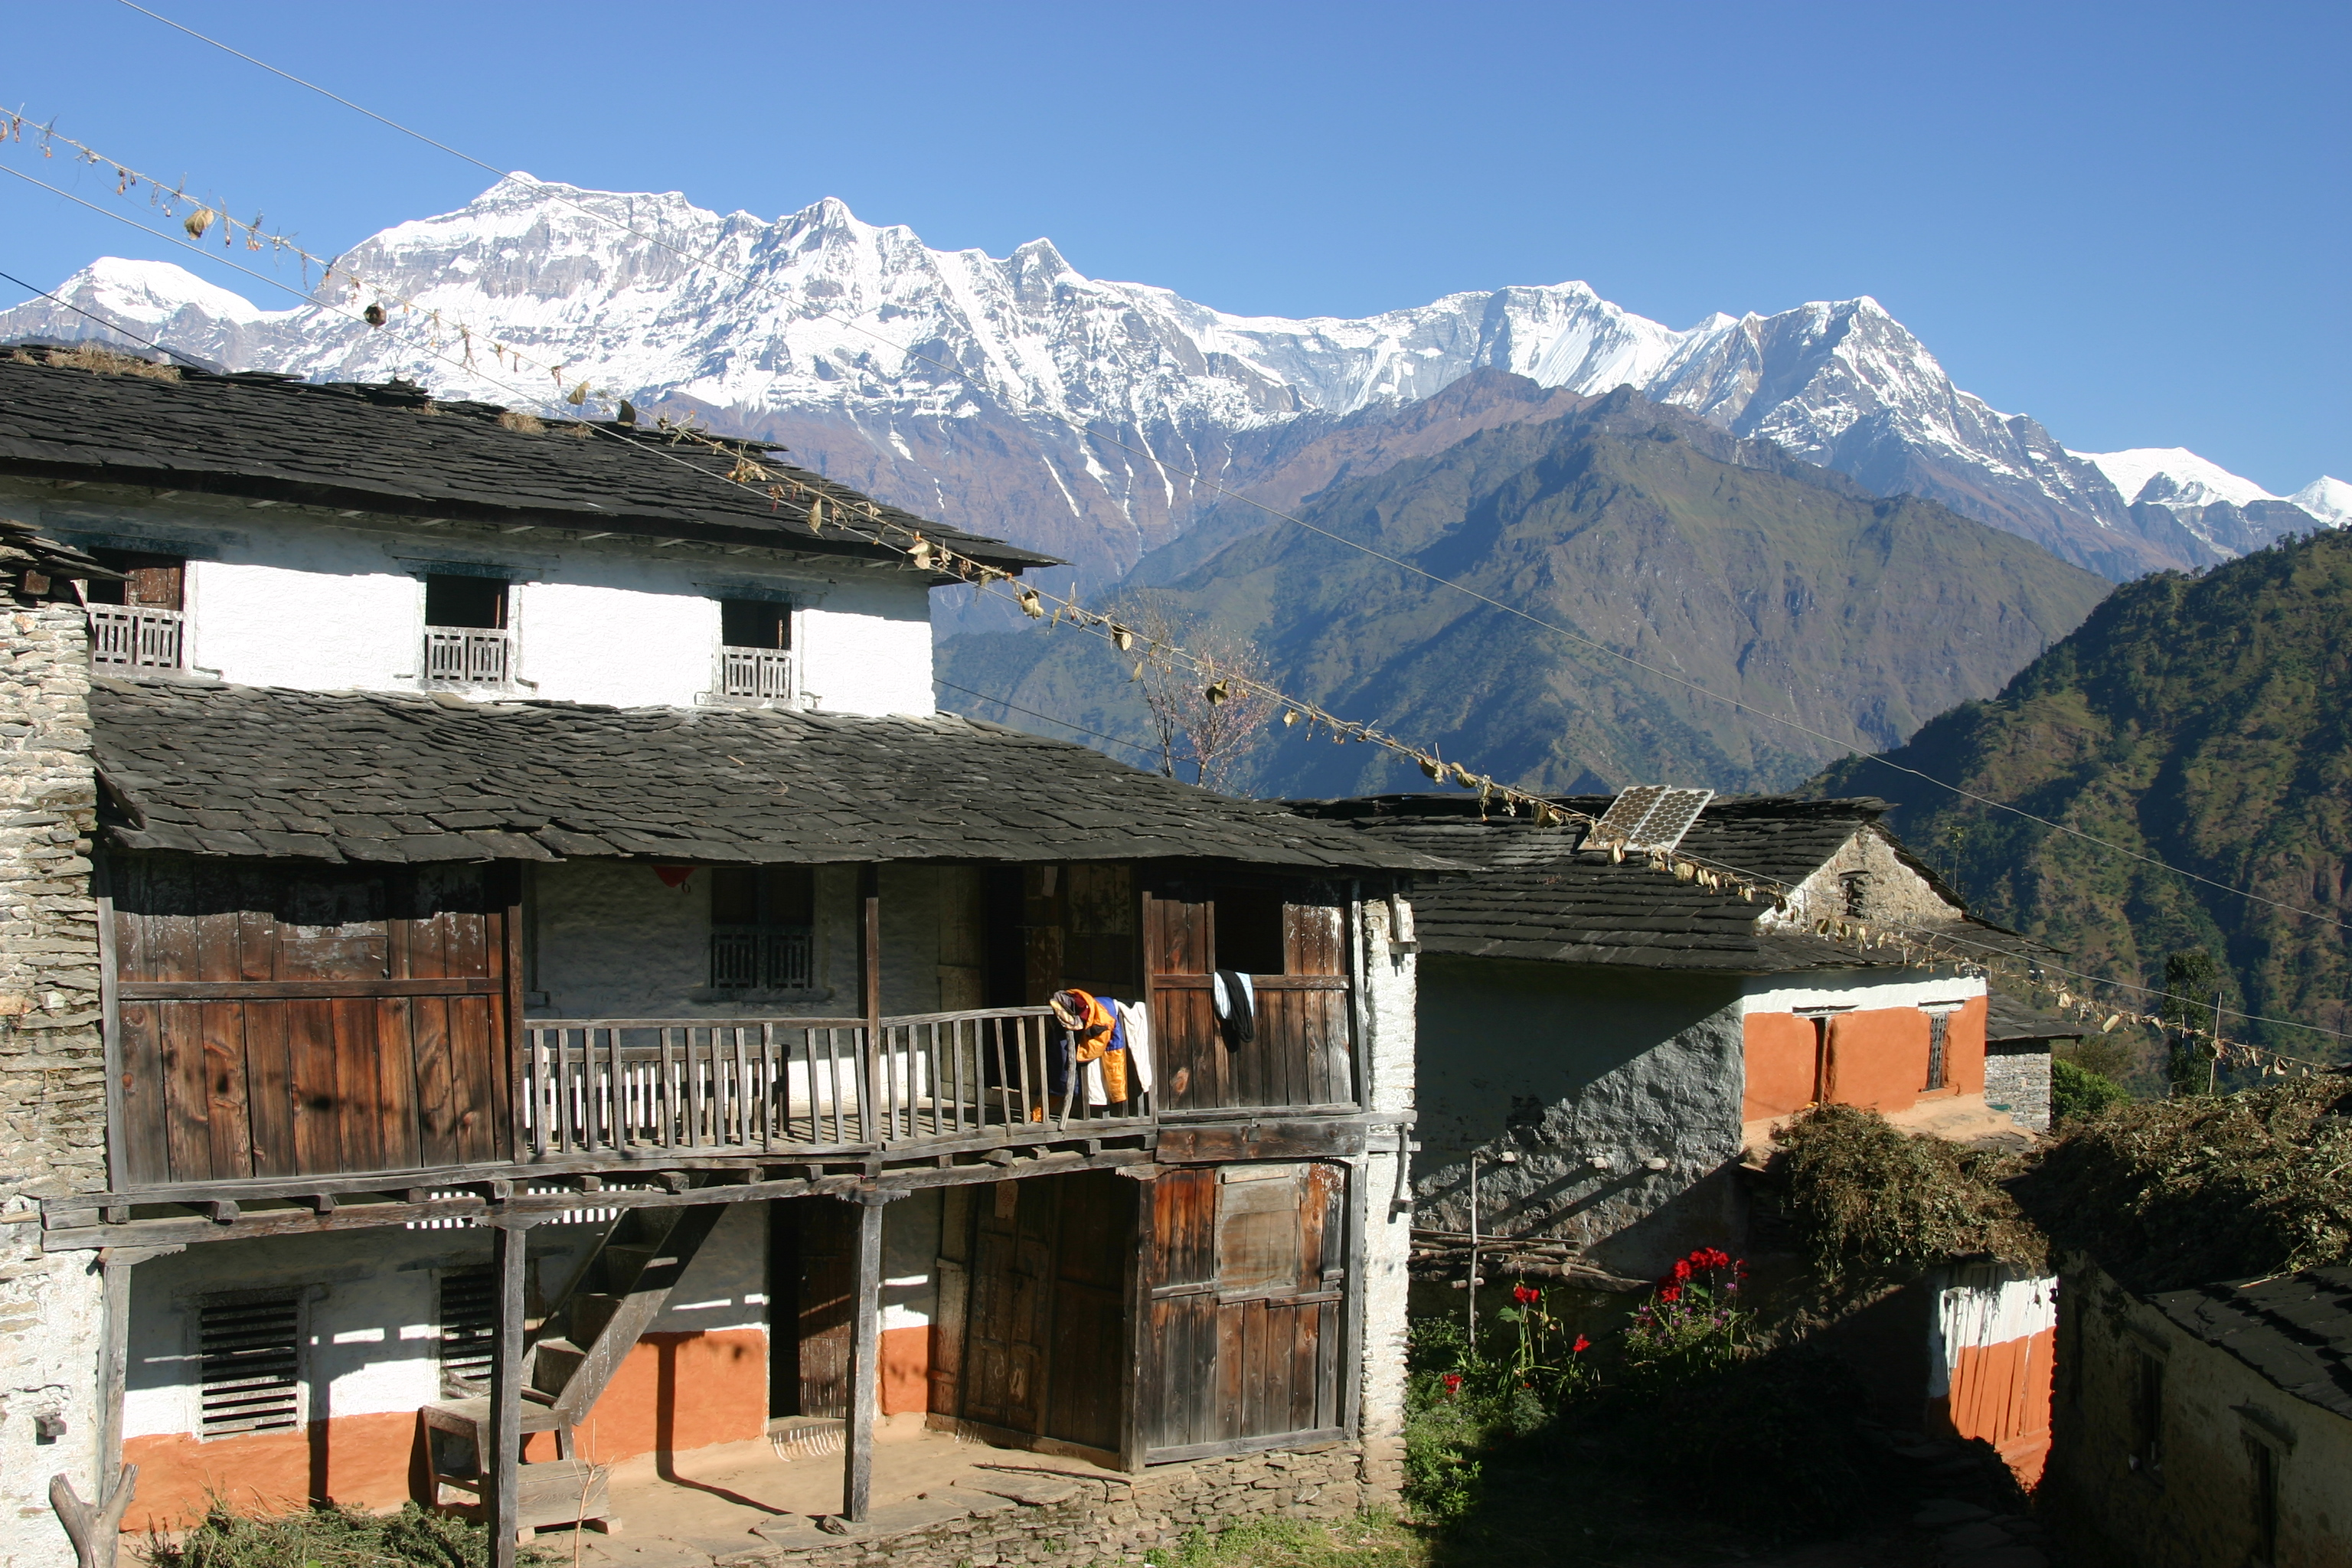 Fileflickr don macauley house in nepal jpg